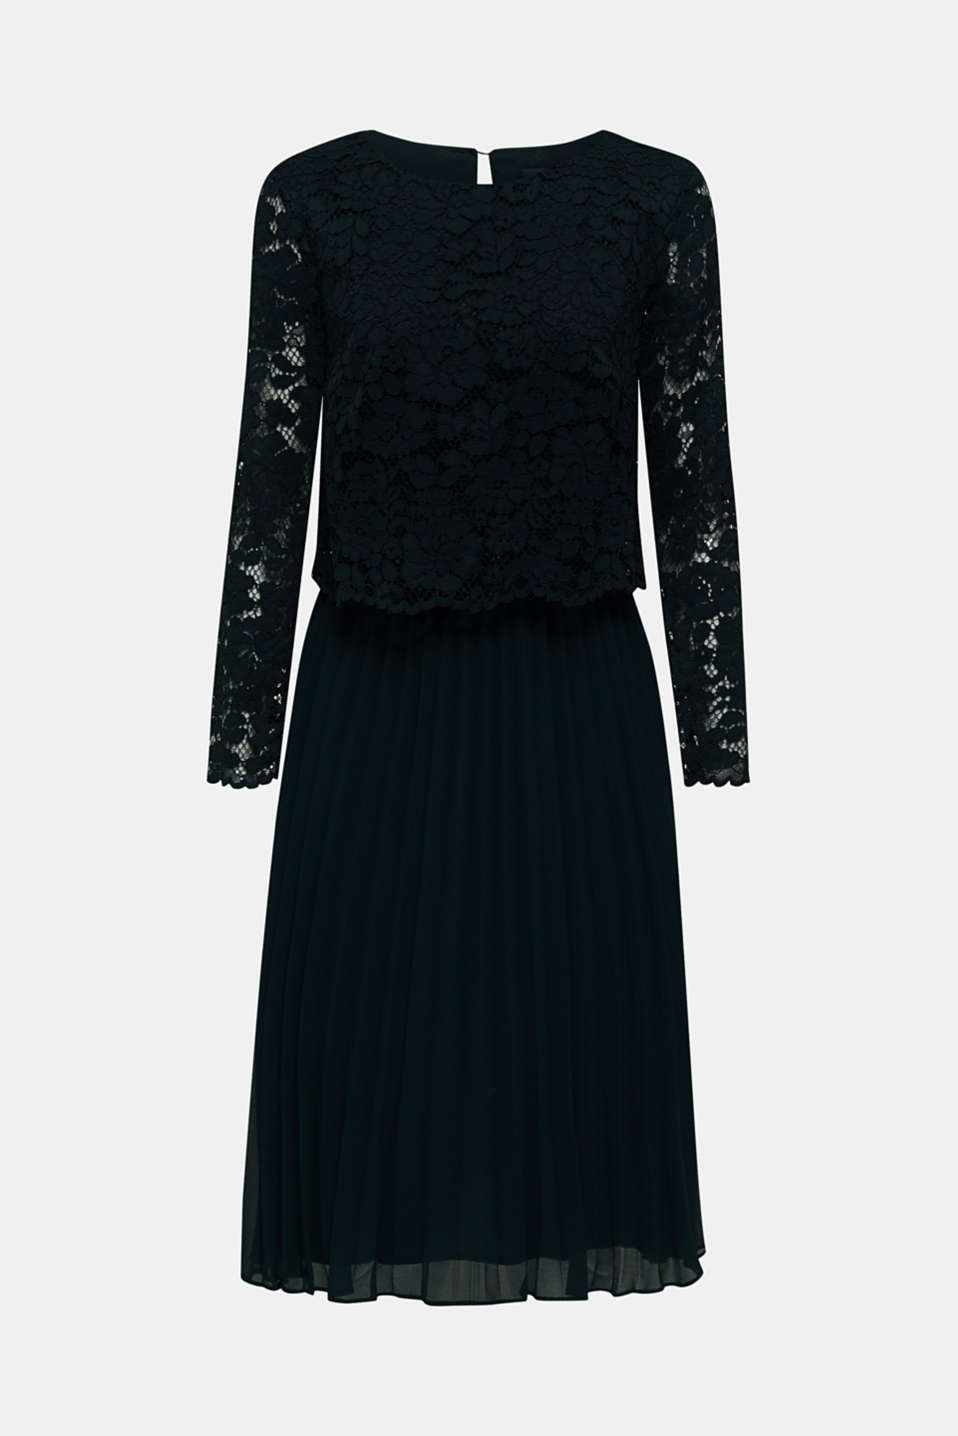 Lace dress with a pleated skirt, DARK TEAL GREEN, detail image number 5